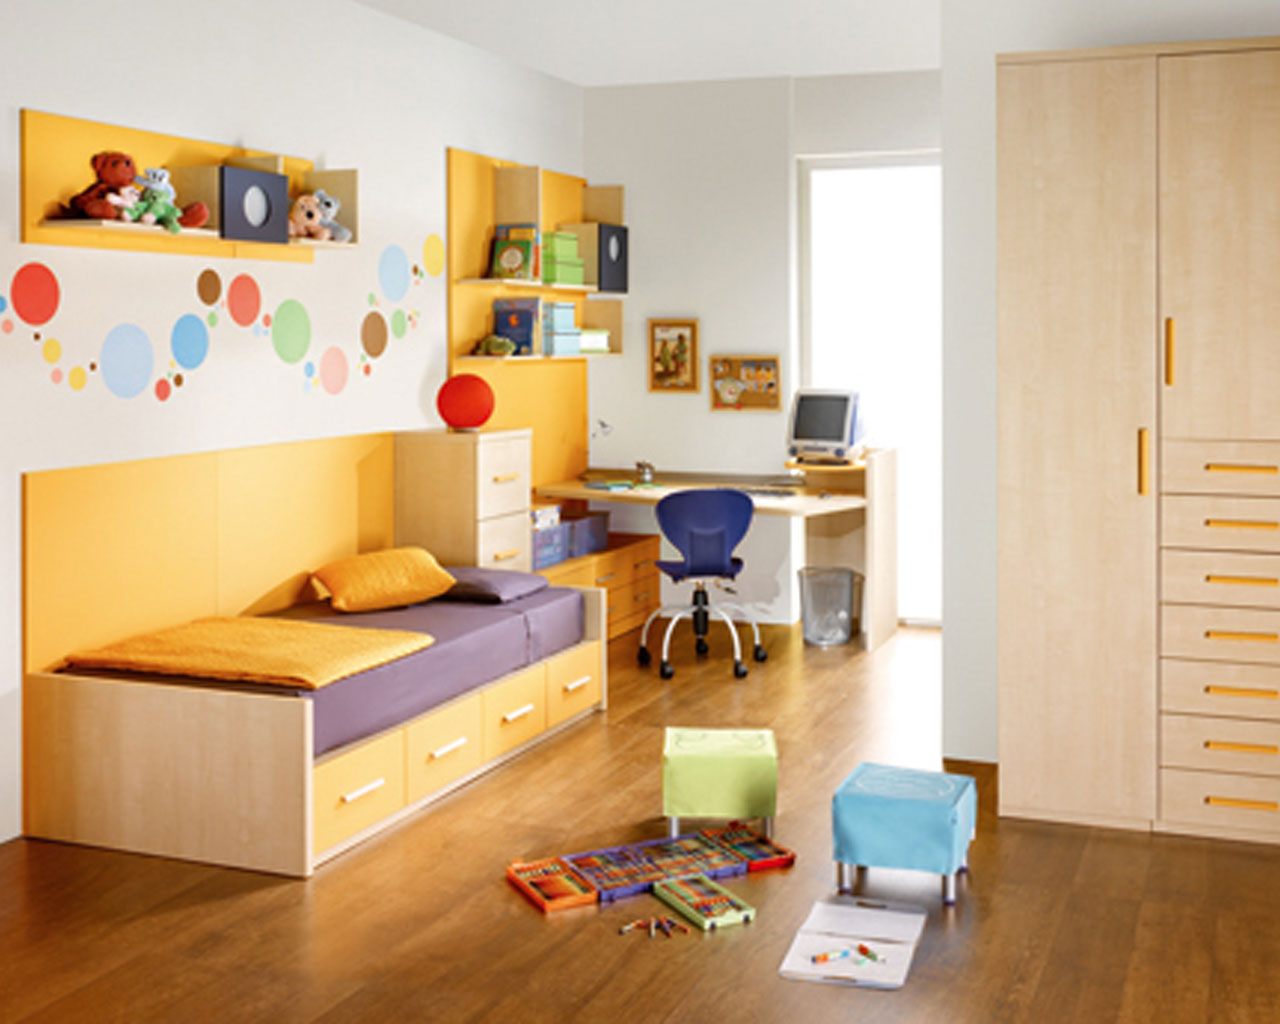 Kids room decor and design ideas as the easy yet effective for Kid room decor